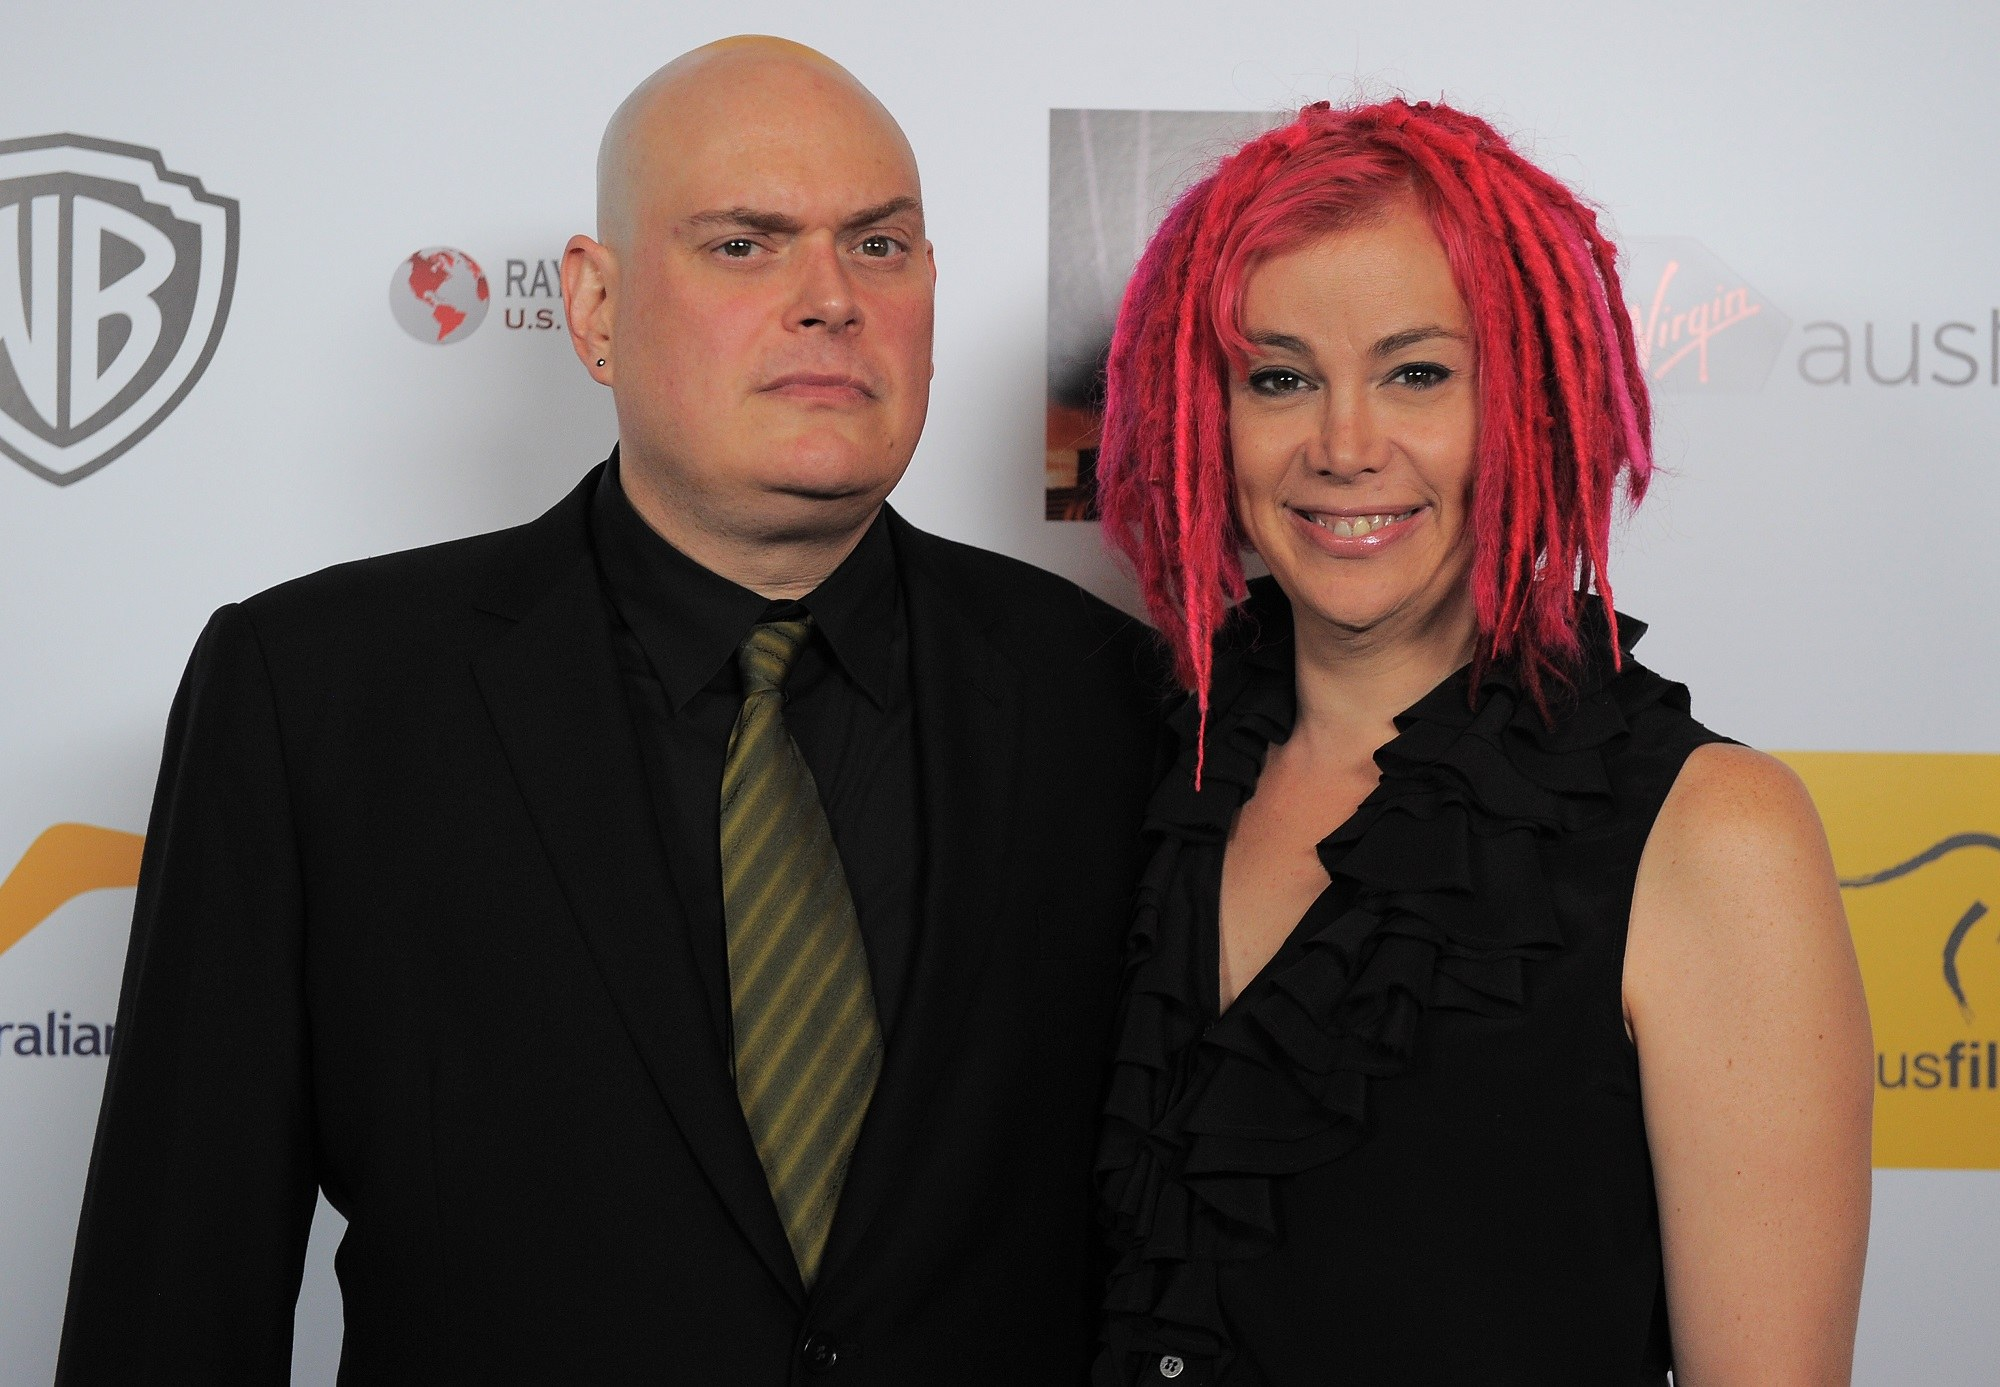 Matrix directors Andy (now Lilly) and Lana Wachowski